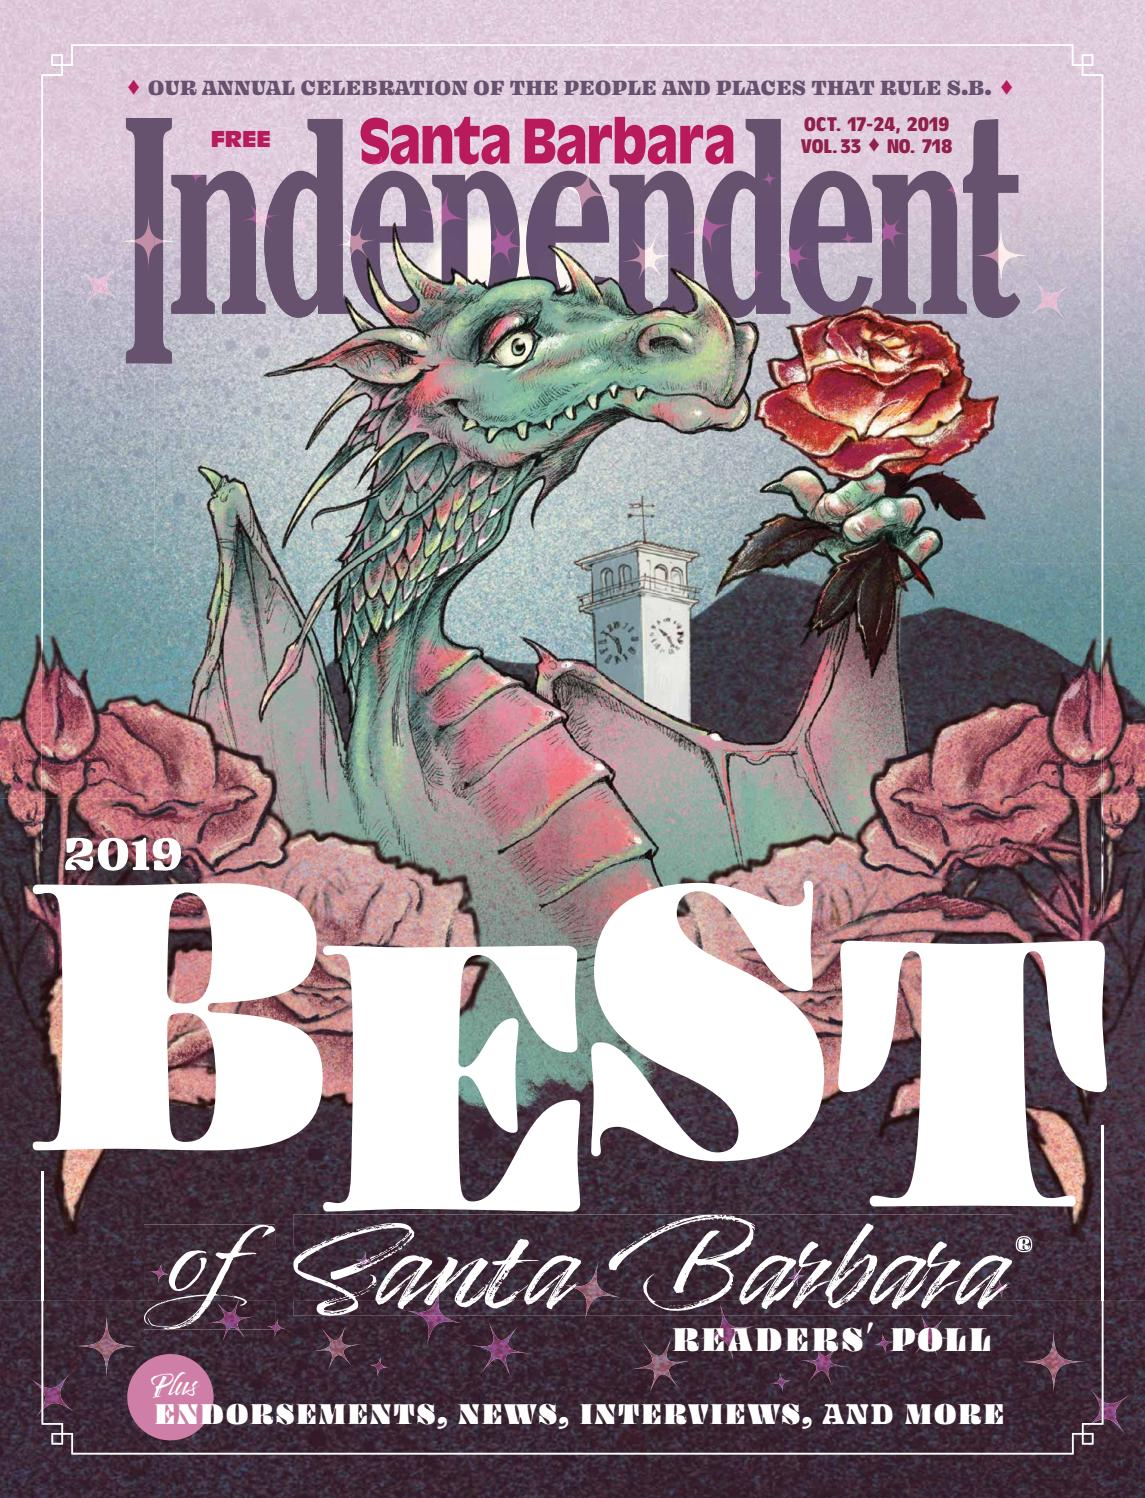 Santa Barbara Independent 10 17 19 By Sb Independent Issuu